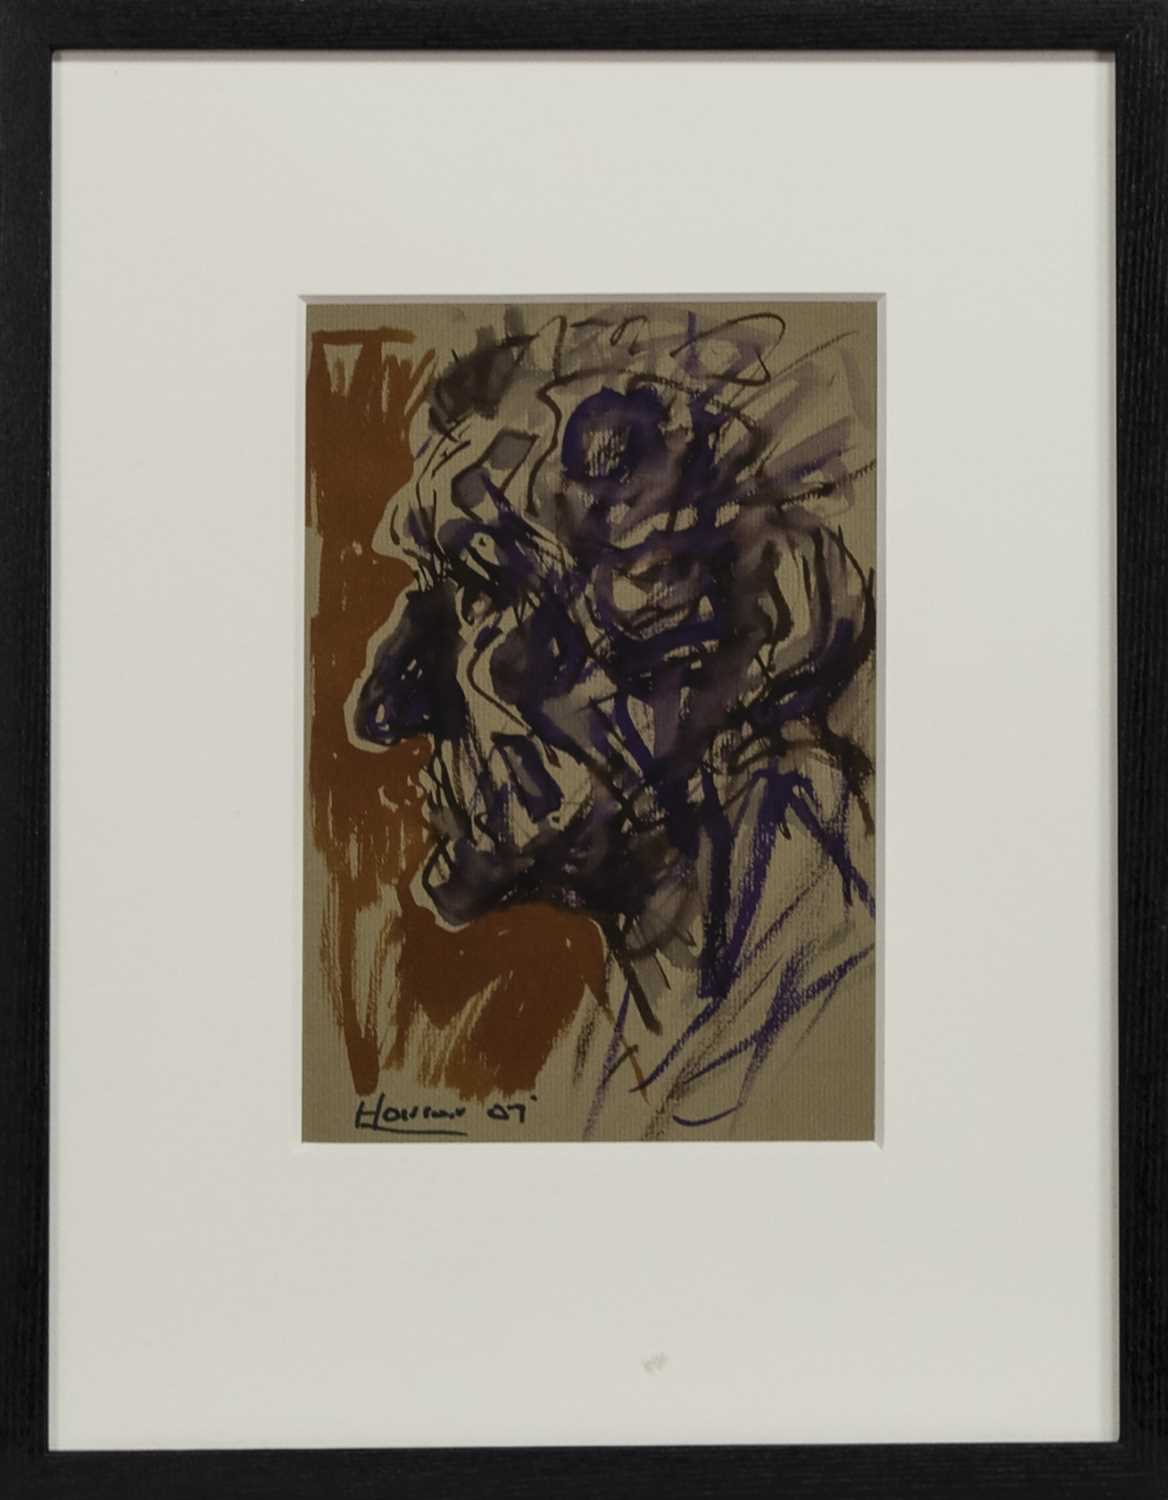 Lot 510 - GORBALS MAN 2007, A WATERCOLOUR BY PETER HOWSON